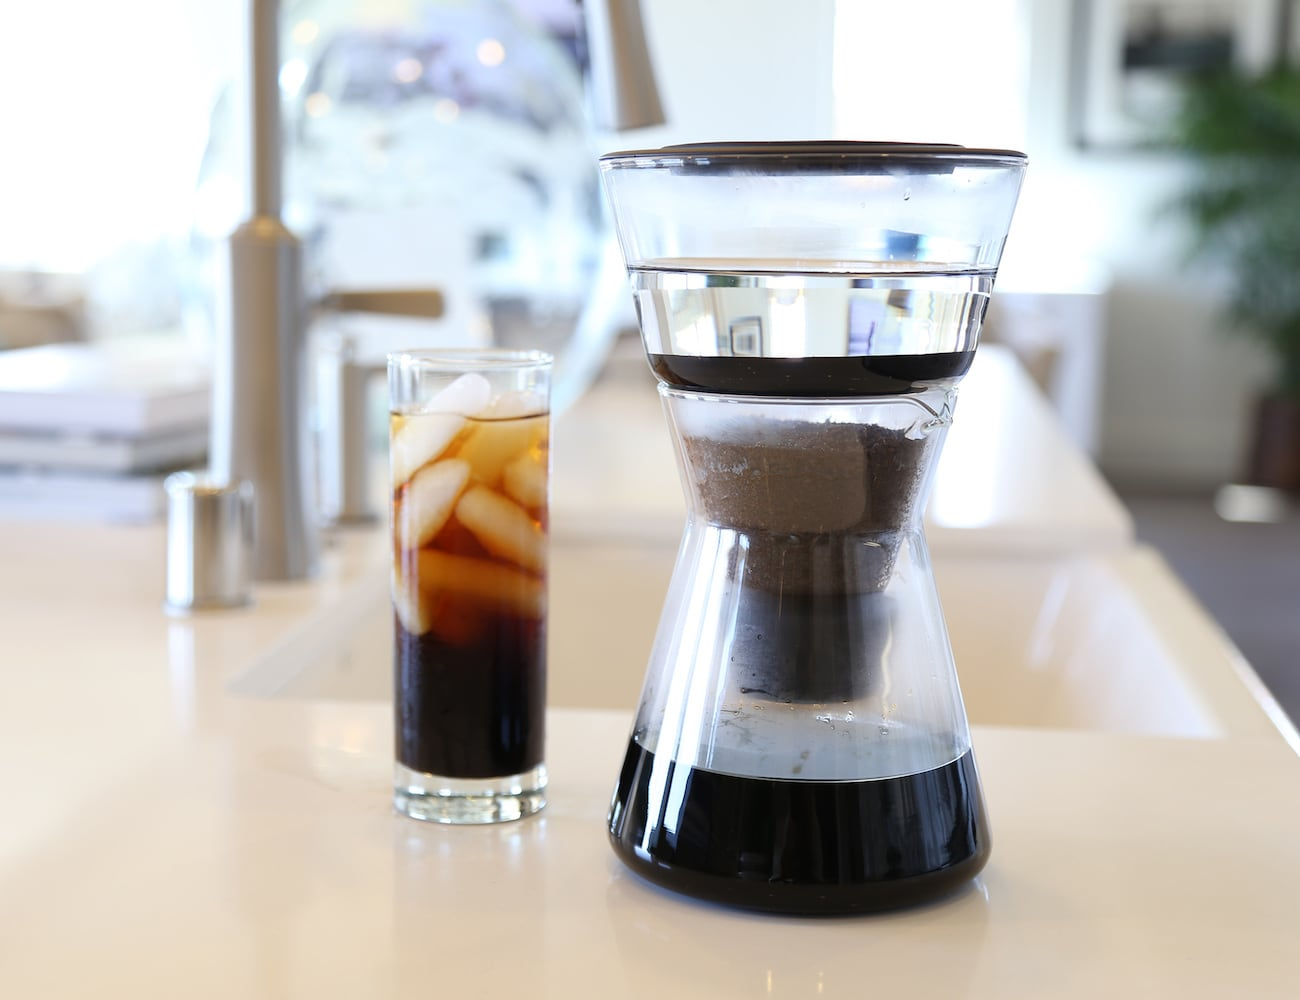 Gravity 4 In 1 Craft Coffee Maker 187 Gadget Flow